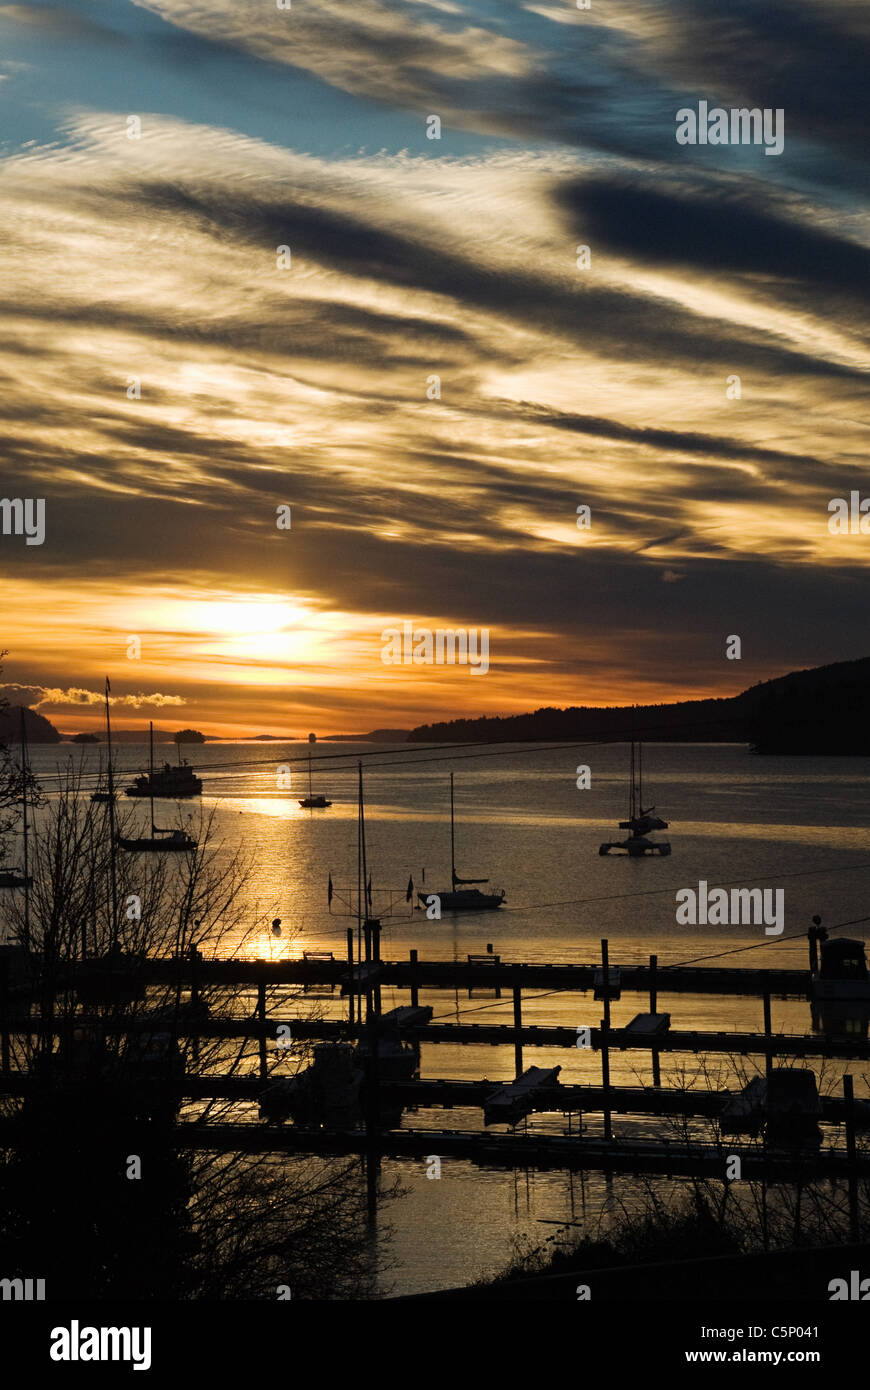 Silhouetted boats on sea, Salt Spring Island, British Columbia, Canada - Stock Image